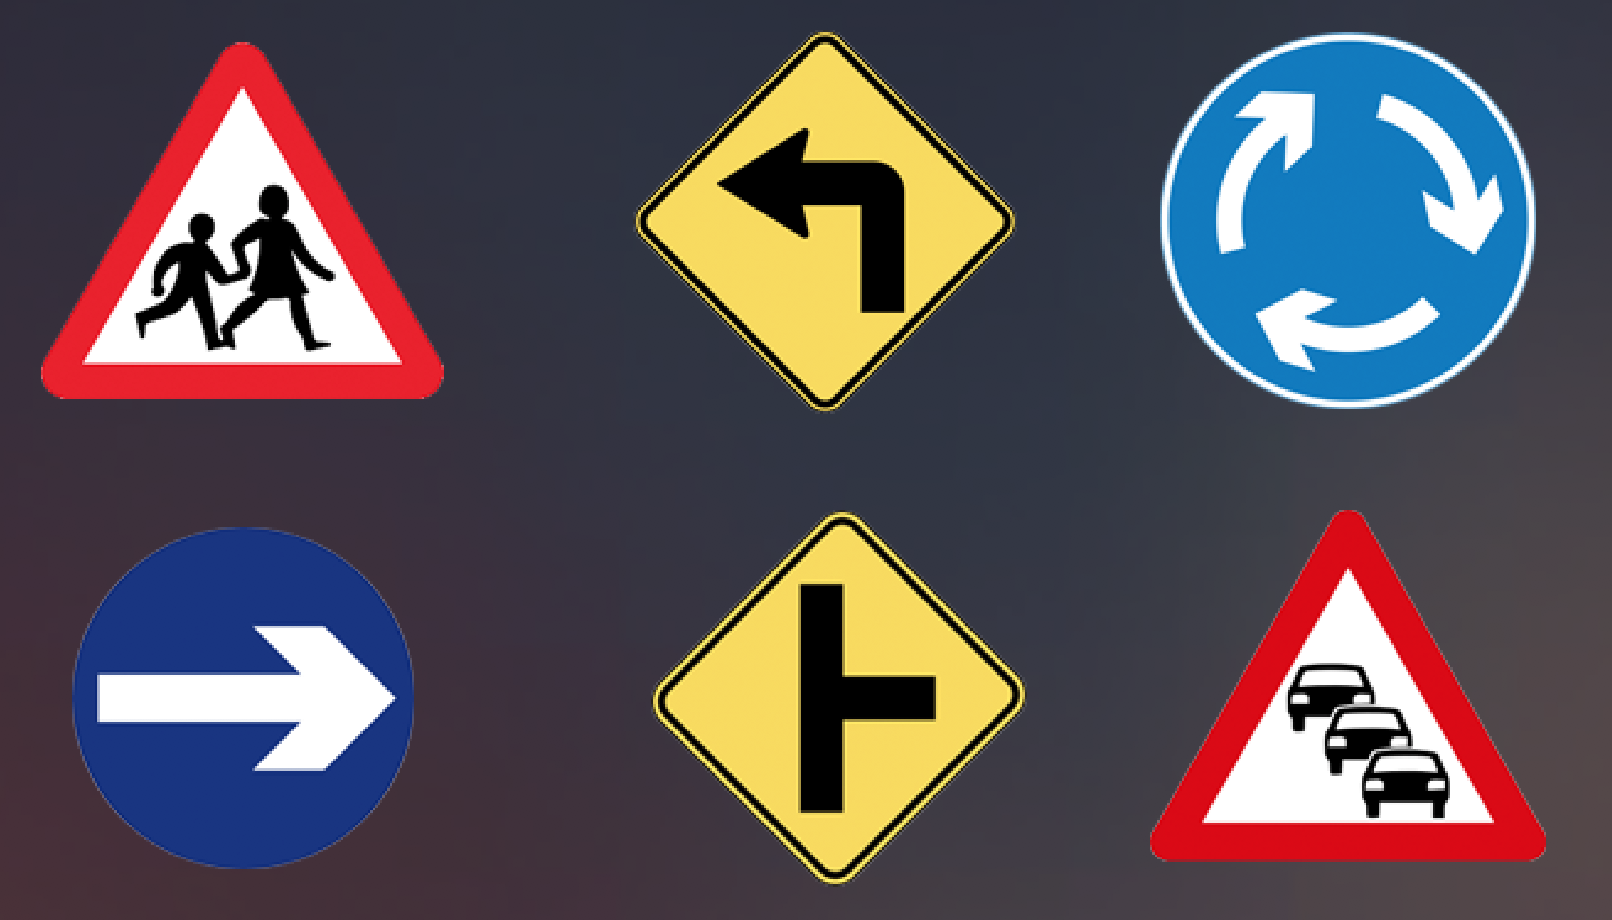 Understand and apply CapsNet on Traffic sign classification